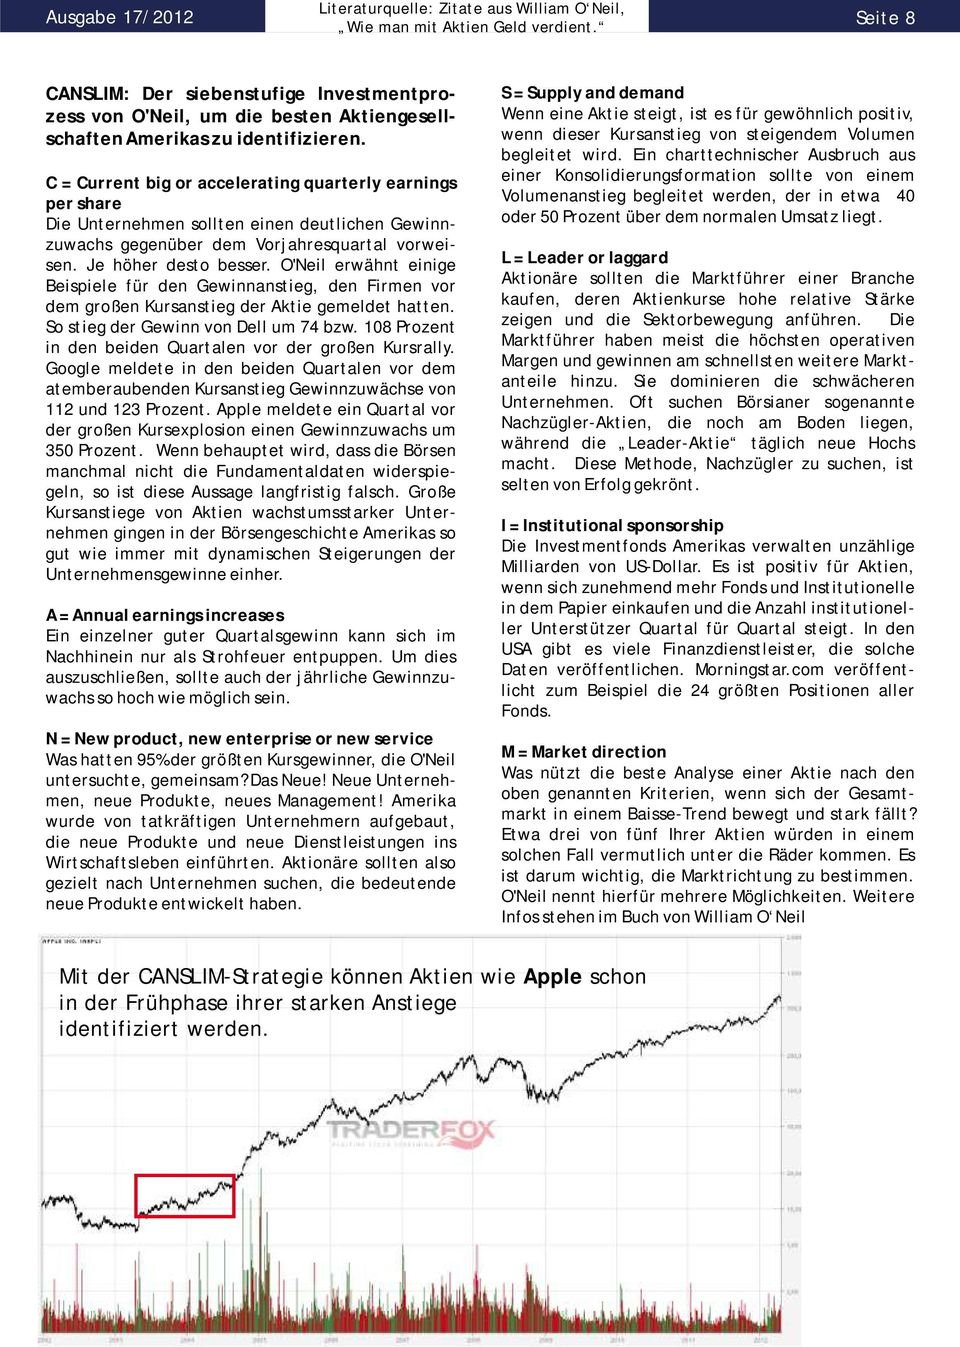 C = Current big or accelerating quarterly earnings per share Die Unternehmen sollten einen deutlichen Gewinnzuwachs gegenüber dem Vorjahresquartal vorweisen. Je höher desto besser.